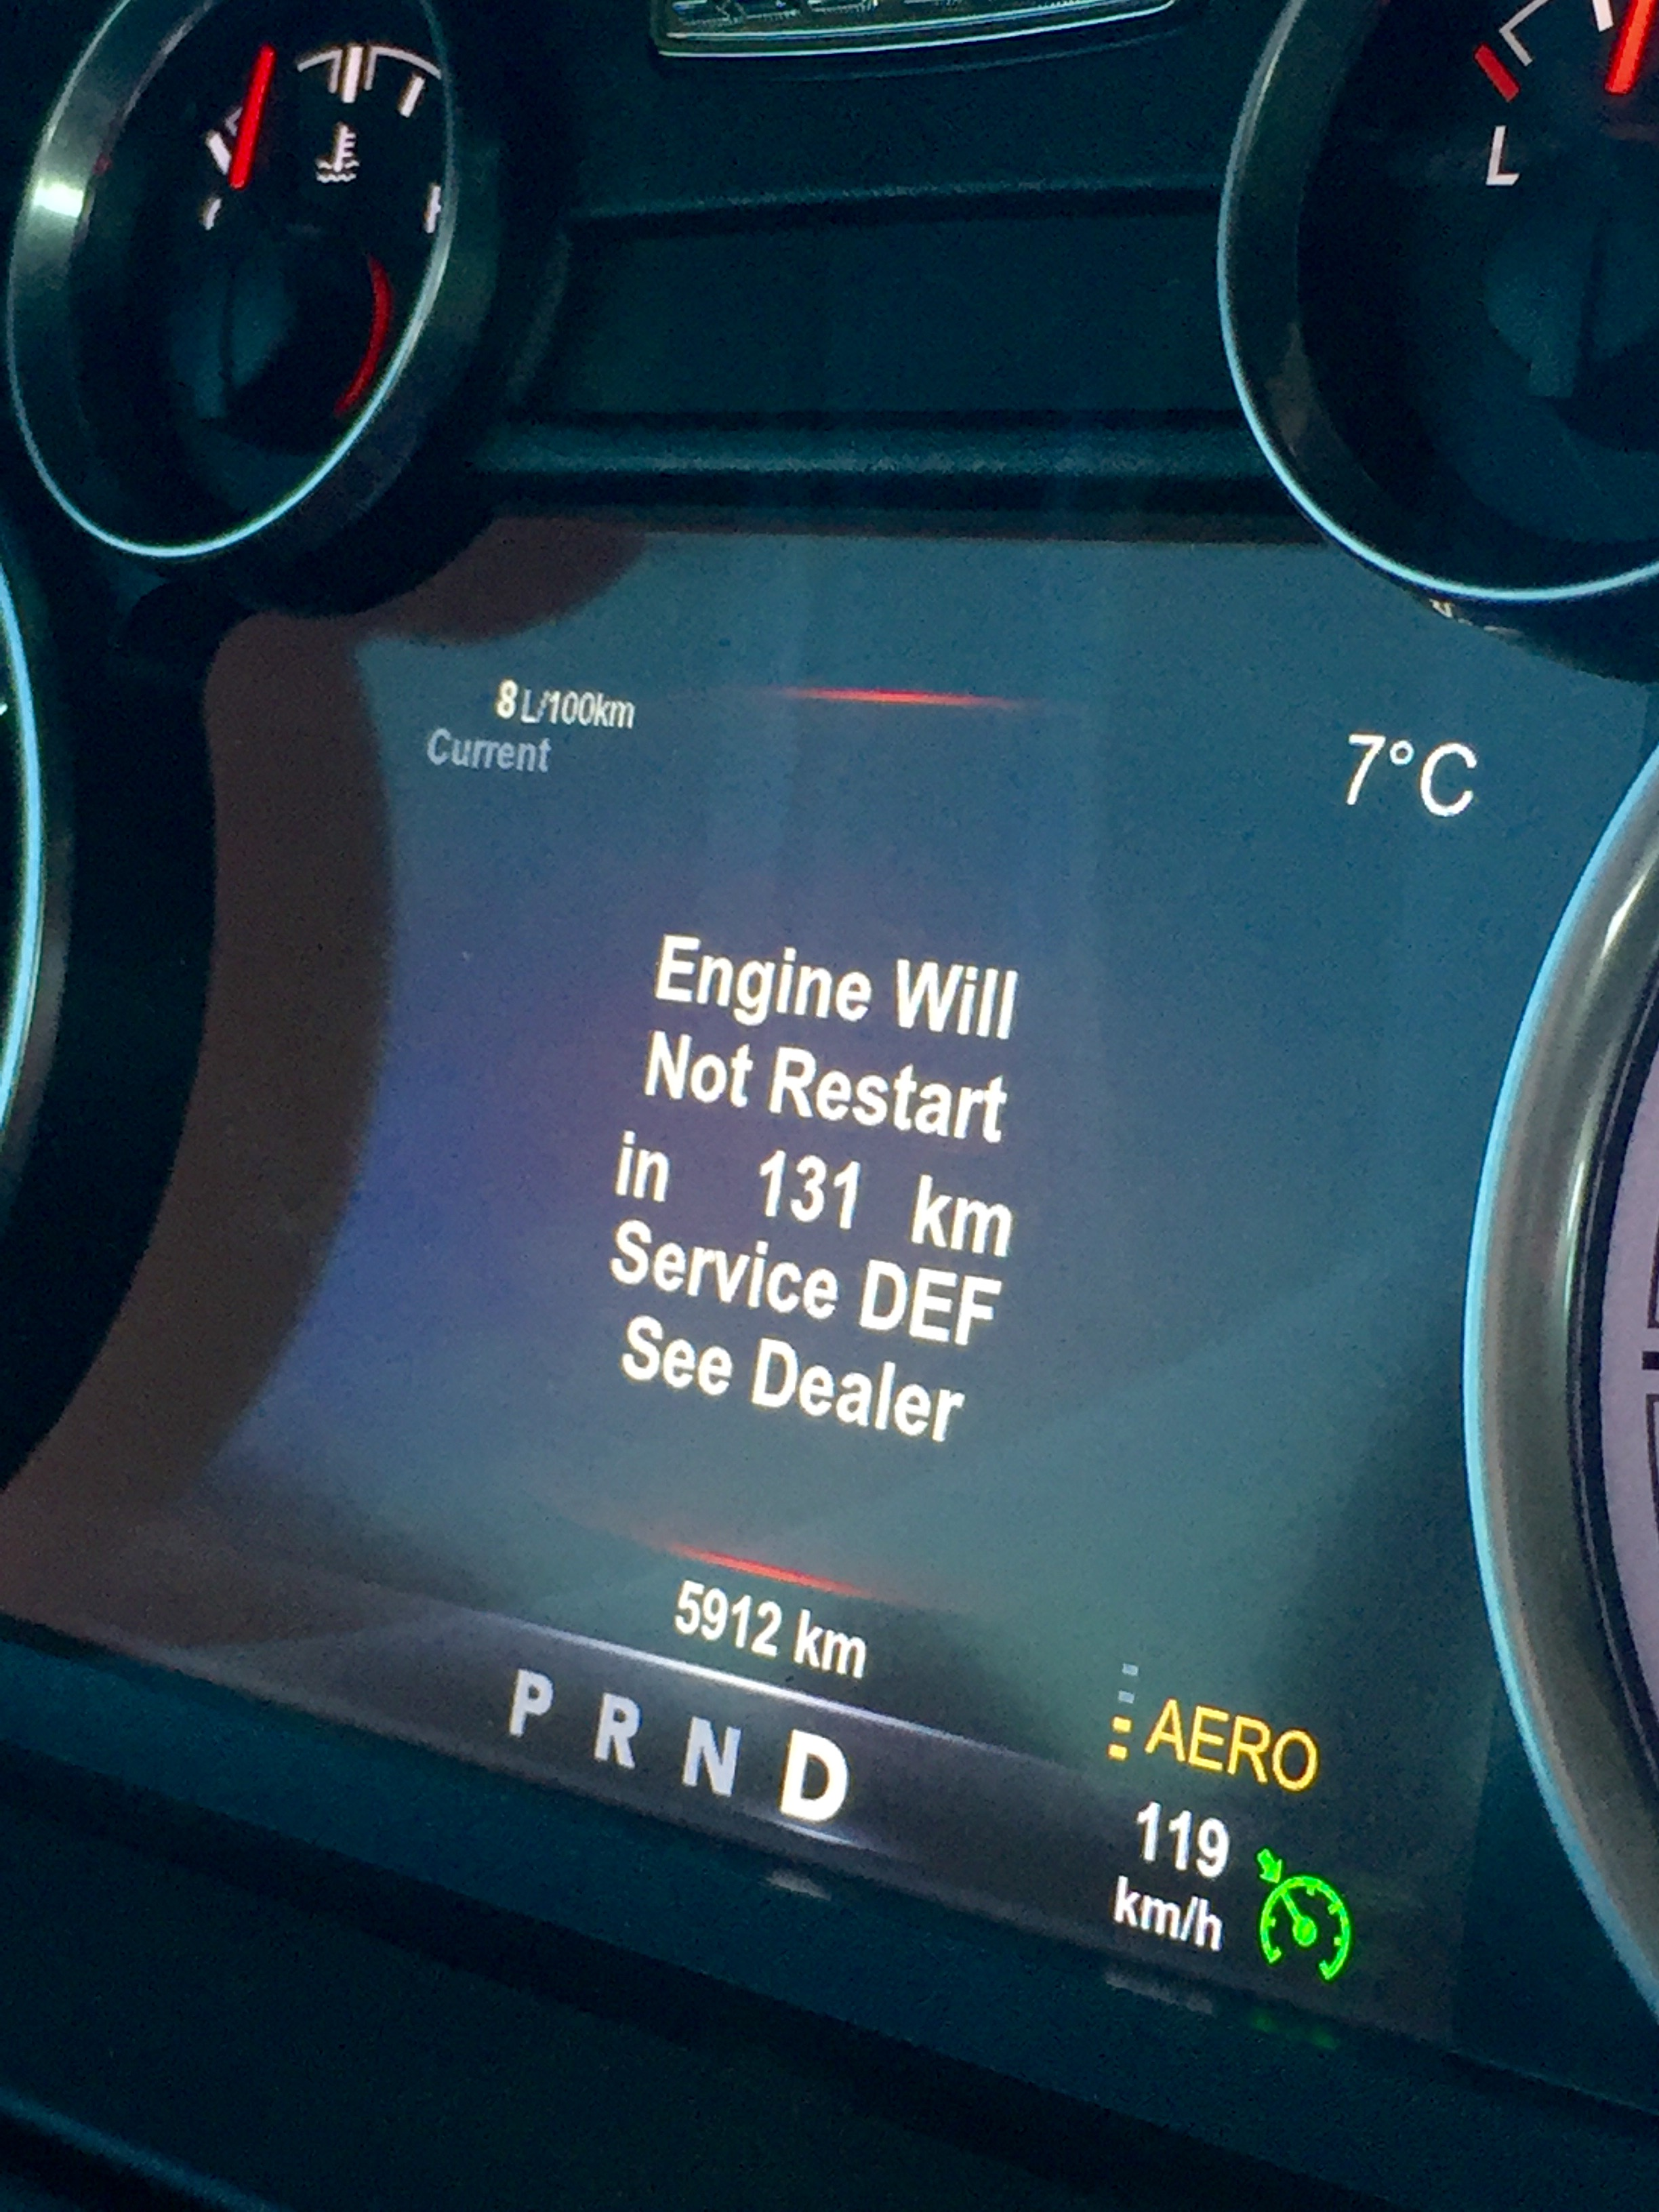 Service DEF System - ENGINE WILL NOT RESTART!